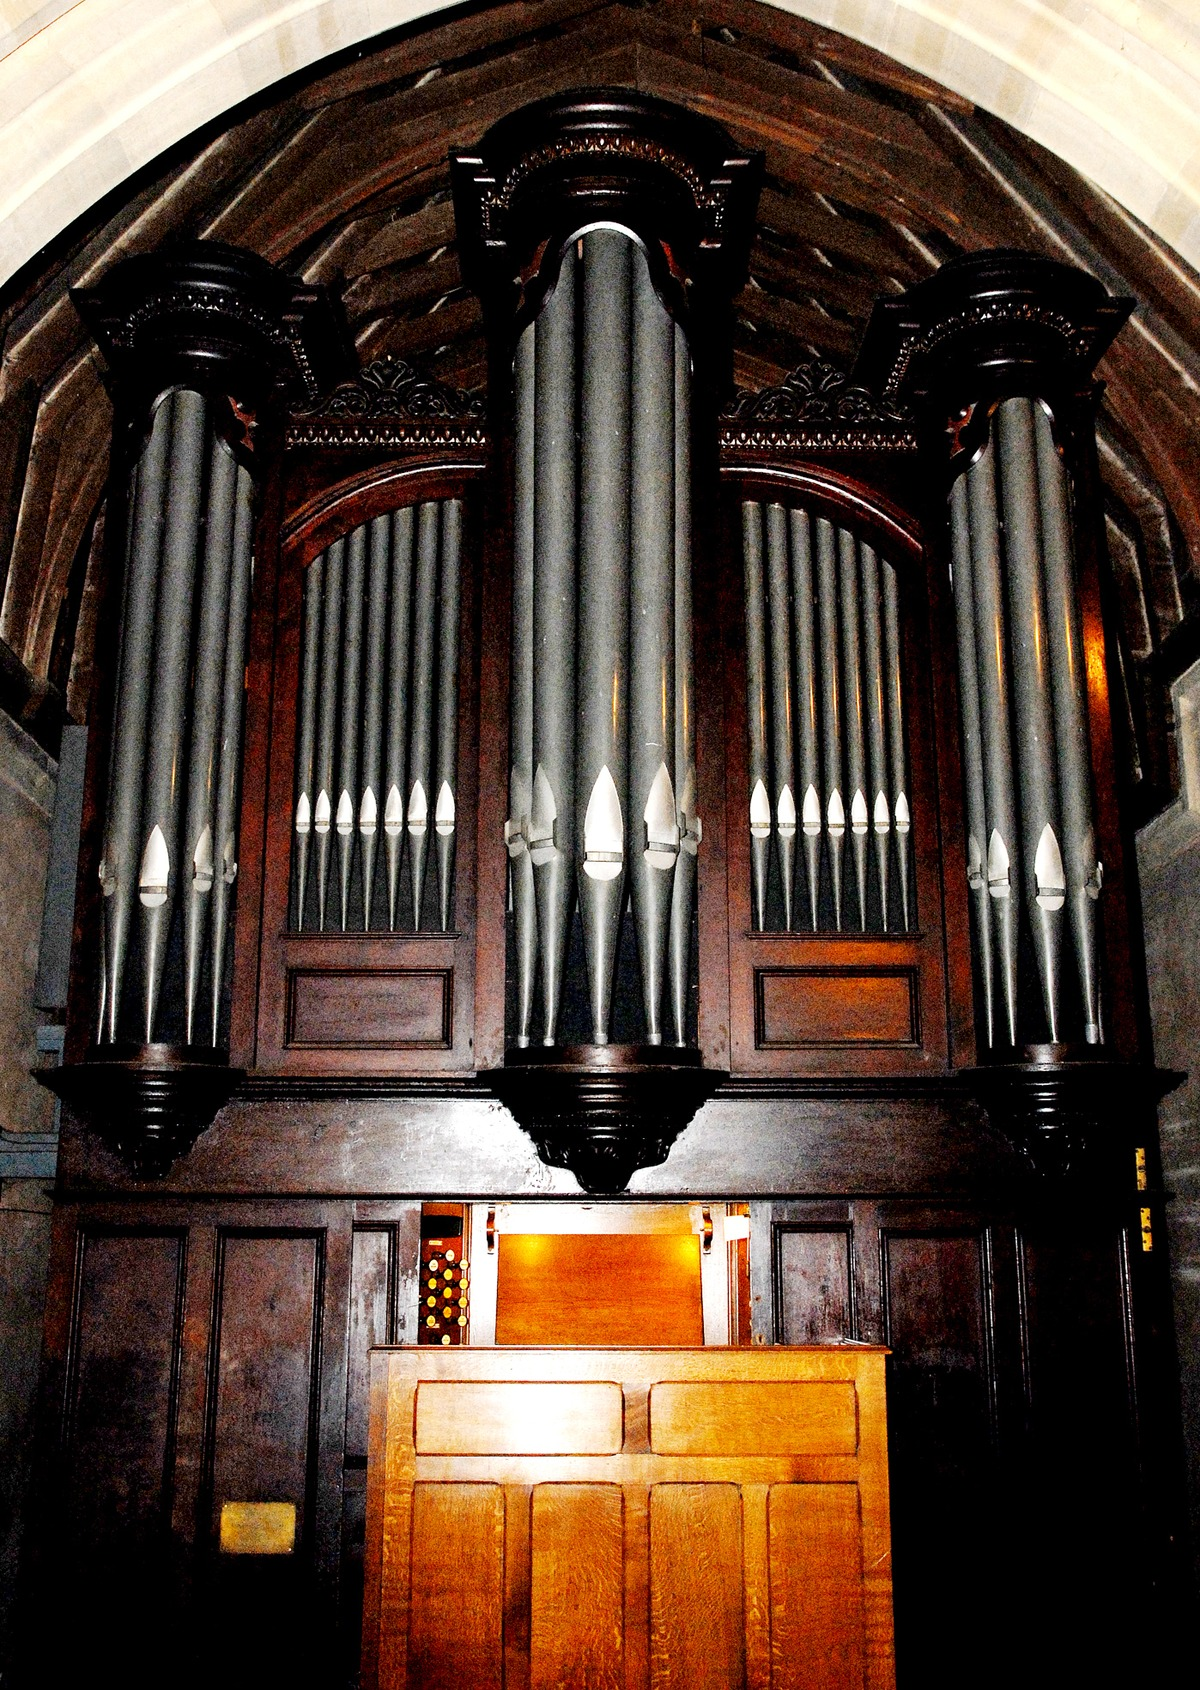 Organist wanted for church services in Tarrington